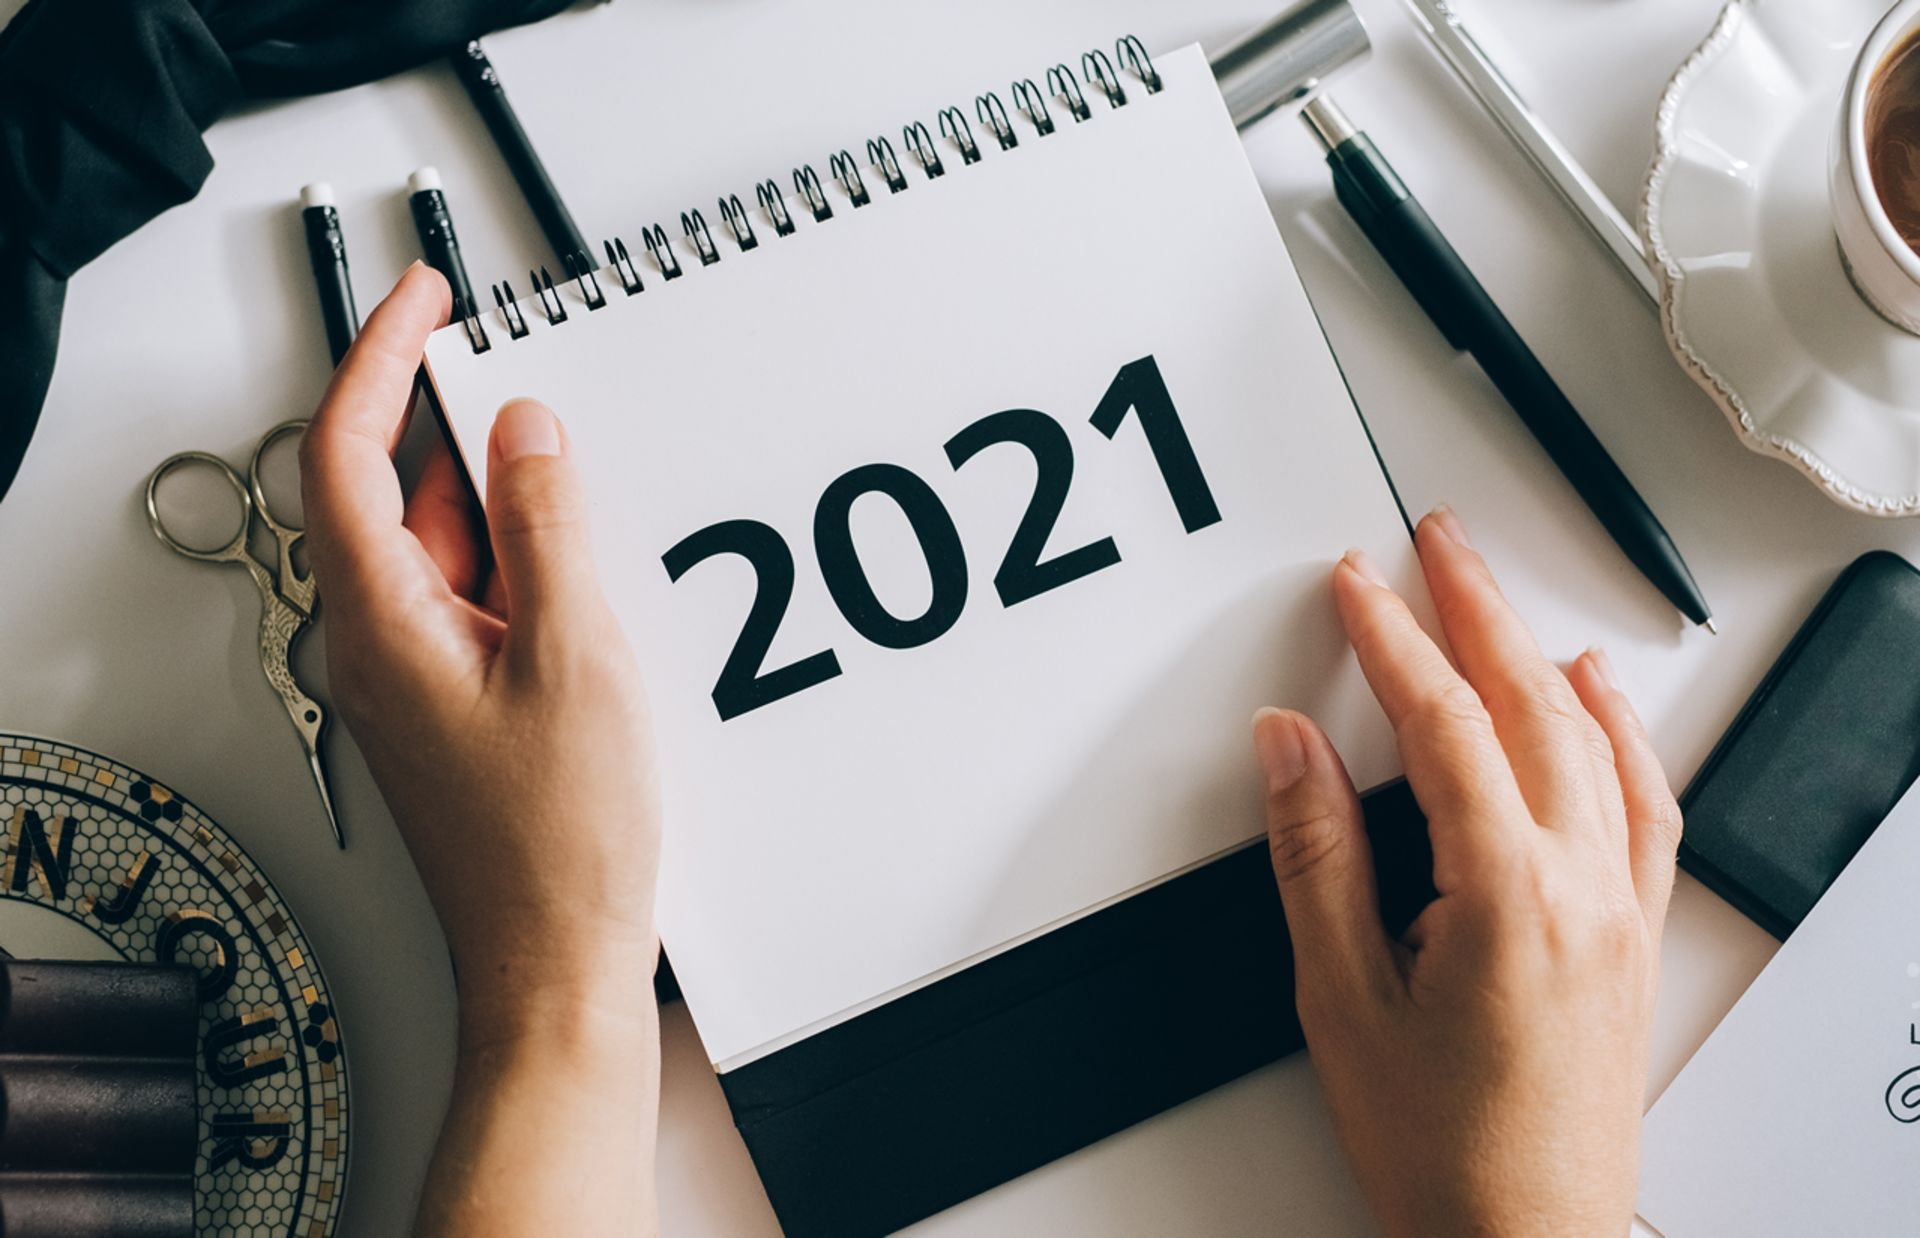 2021 Home Buying, Selling, and Home Maintenance Kick-off